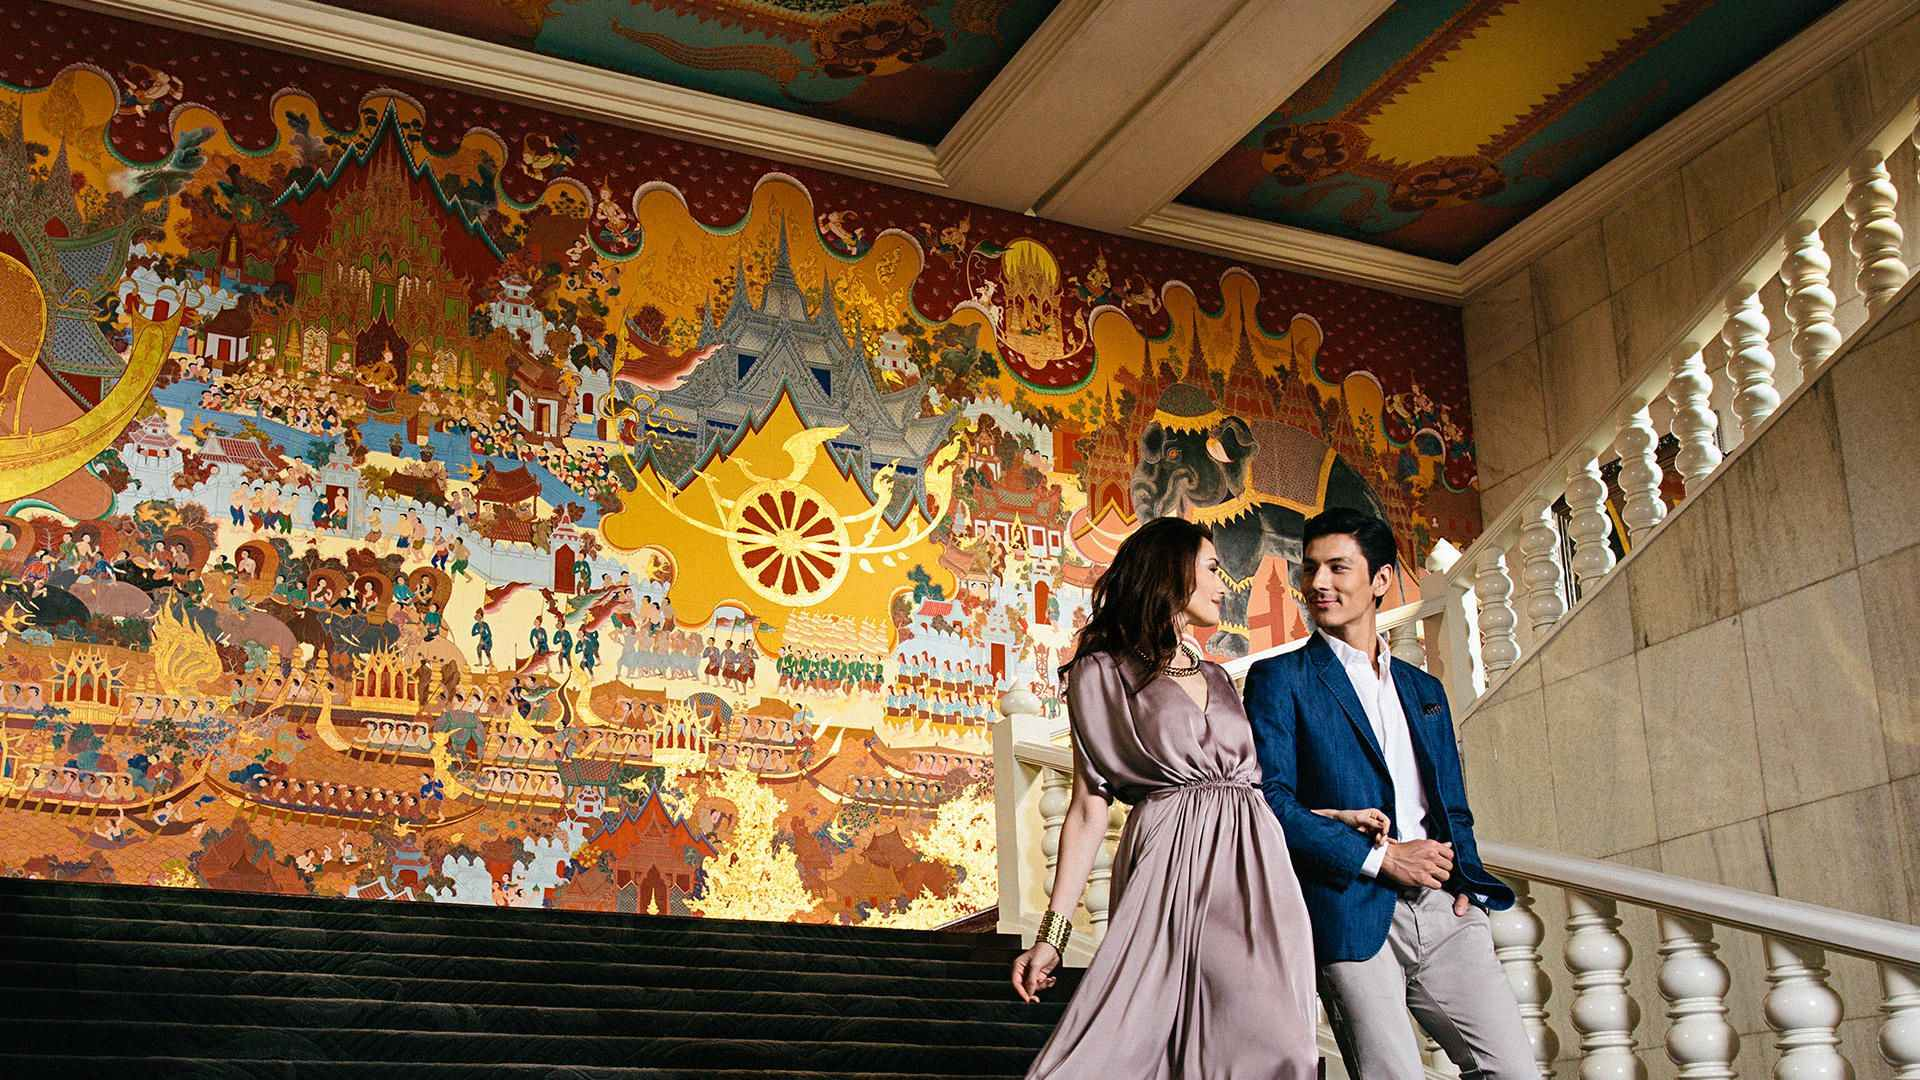 Couples-Stairs_Hero-image_Updated2019_banner_image_20190808